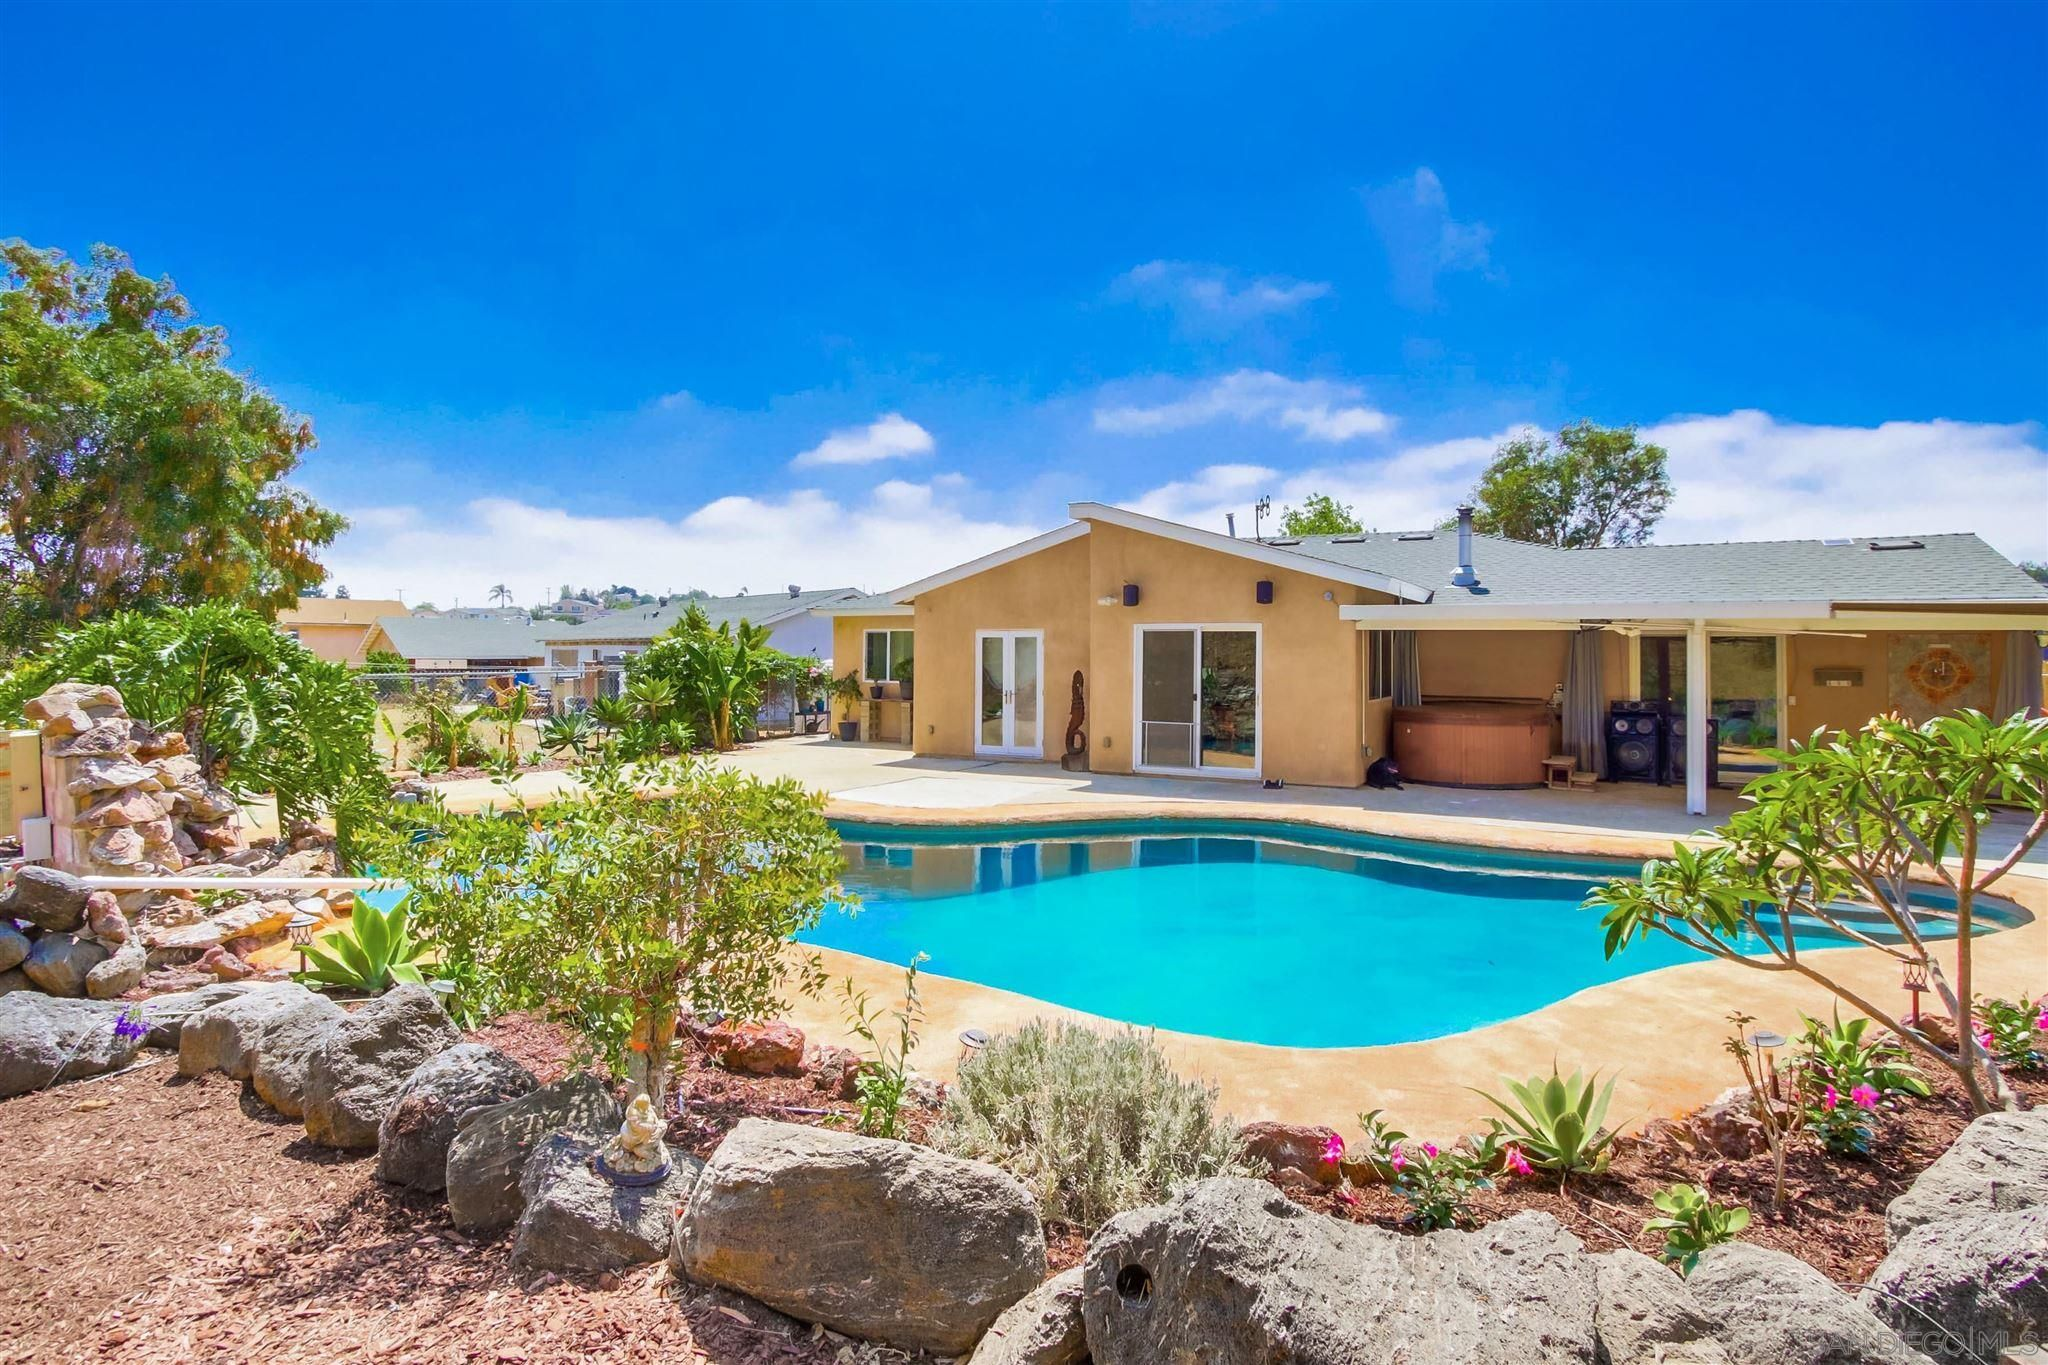 Main Photo: LINDA VISTA House for sale : 4 bedrooms : 2145 Judson St in San Diego